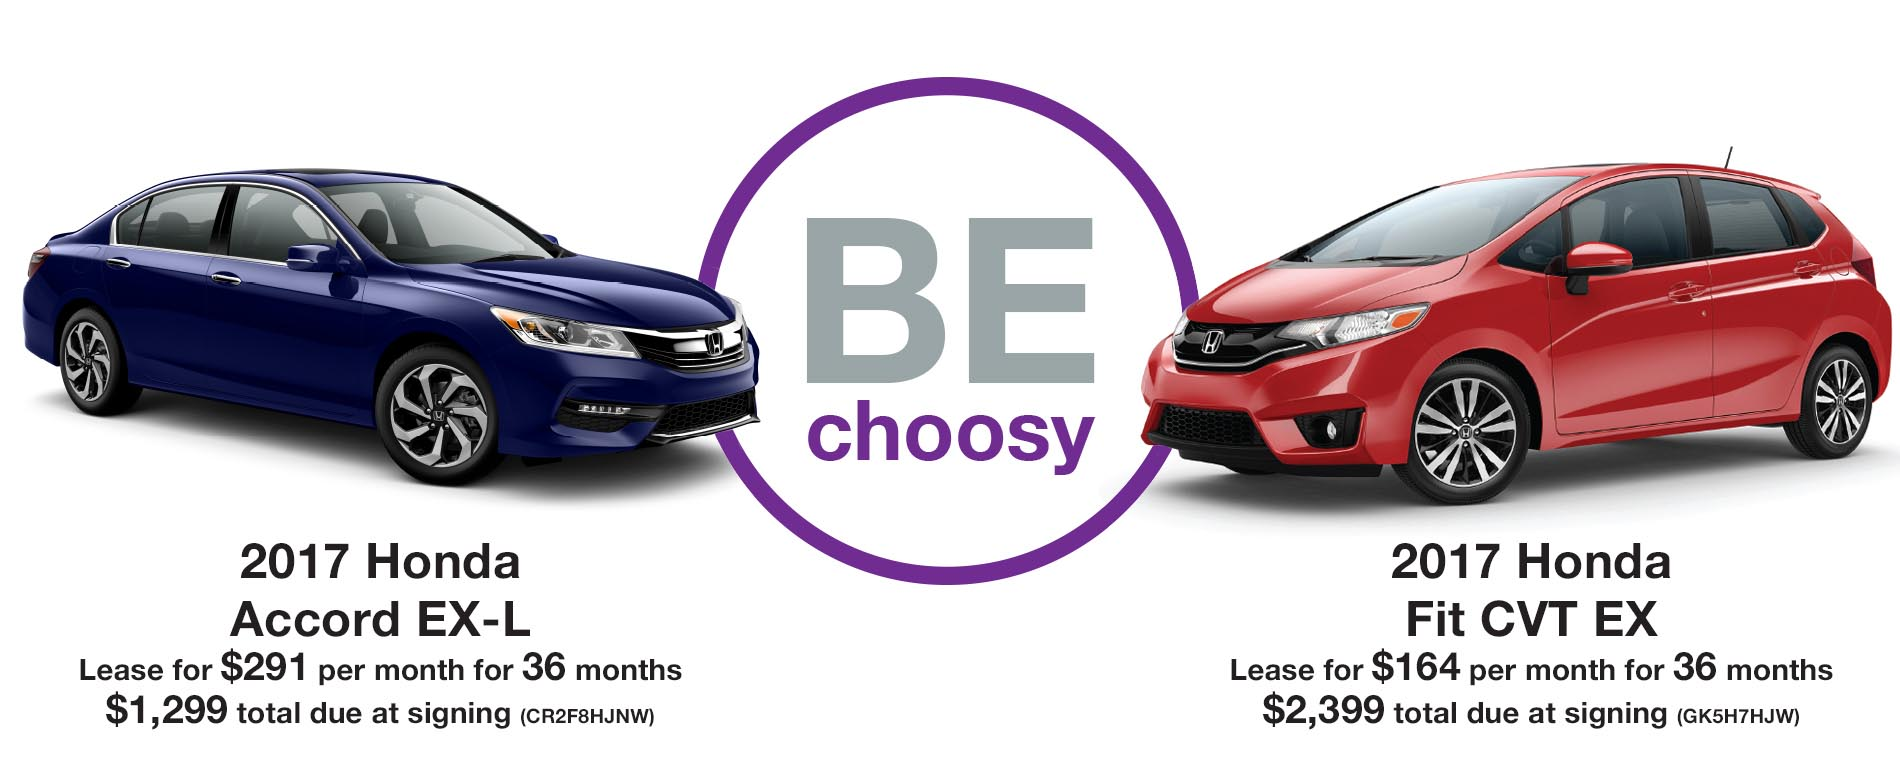 BE Choosy. Lease a Honda Accord EX-L for $291 per month with $1,299 due at signing or an FIT EX $164 per month with $2,399 due at signing.